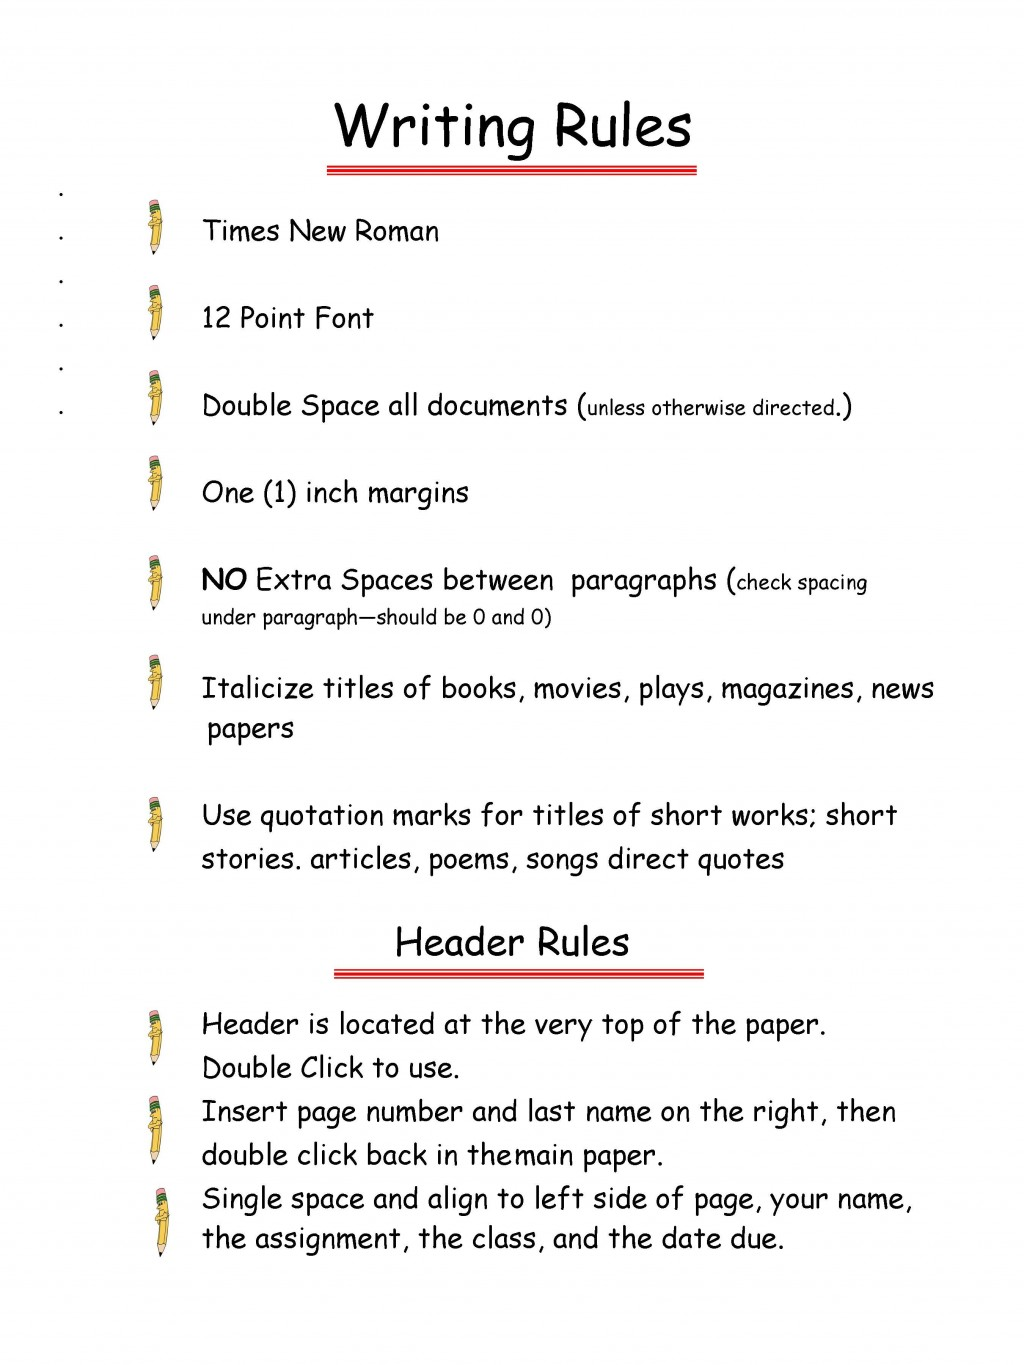 017 Custom Term Paper Writer Breathtaking Research Writing Service Large